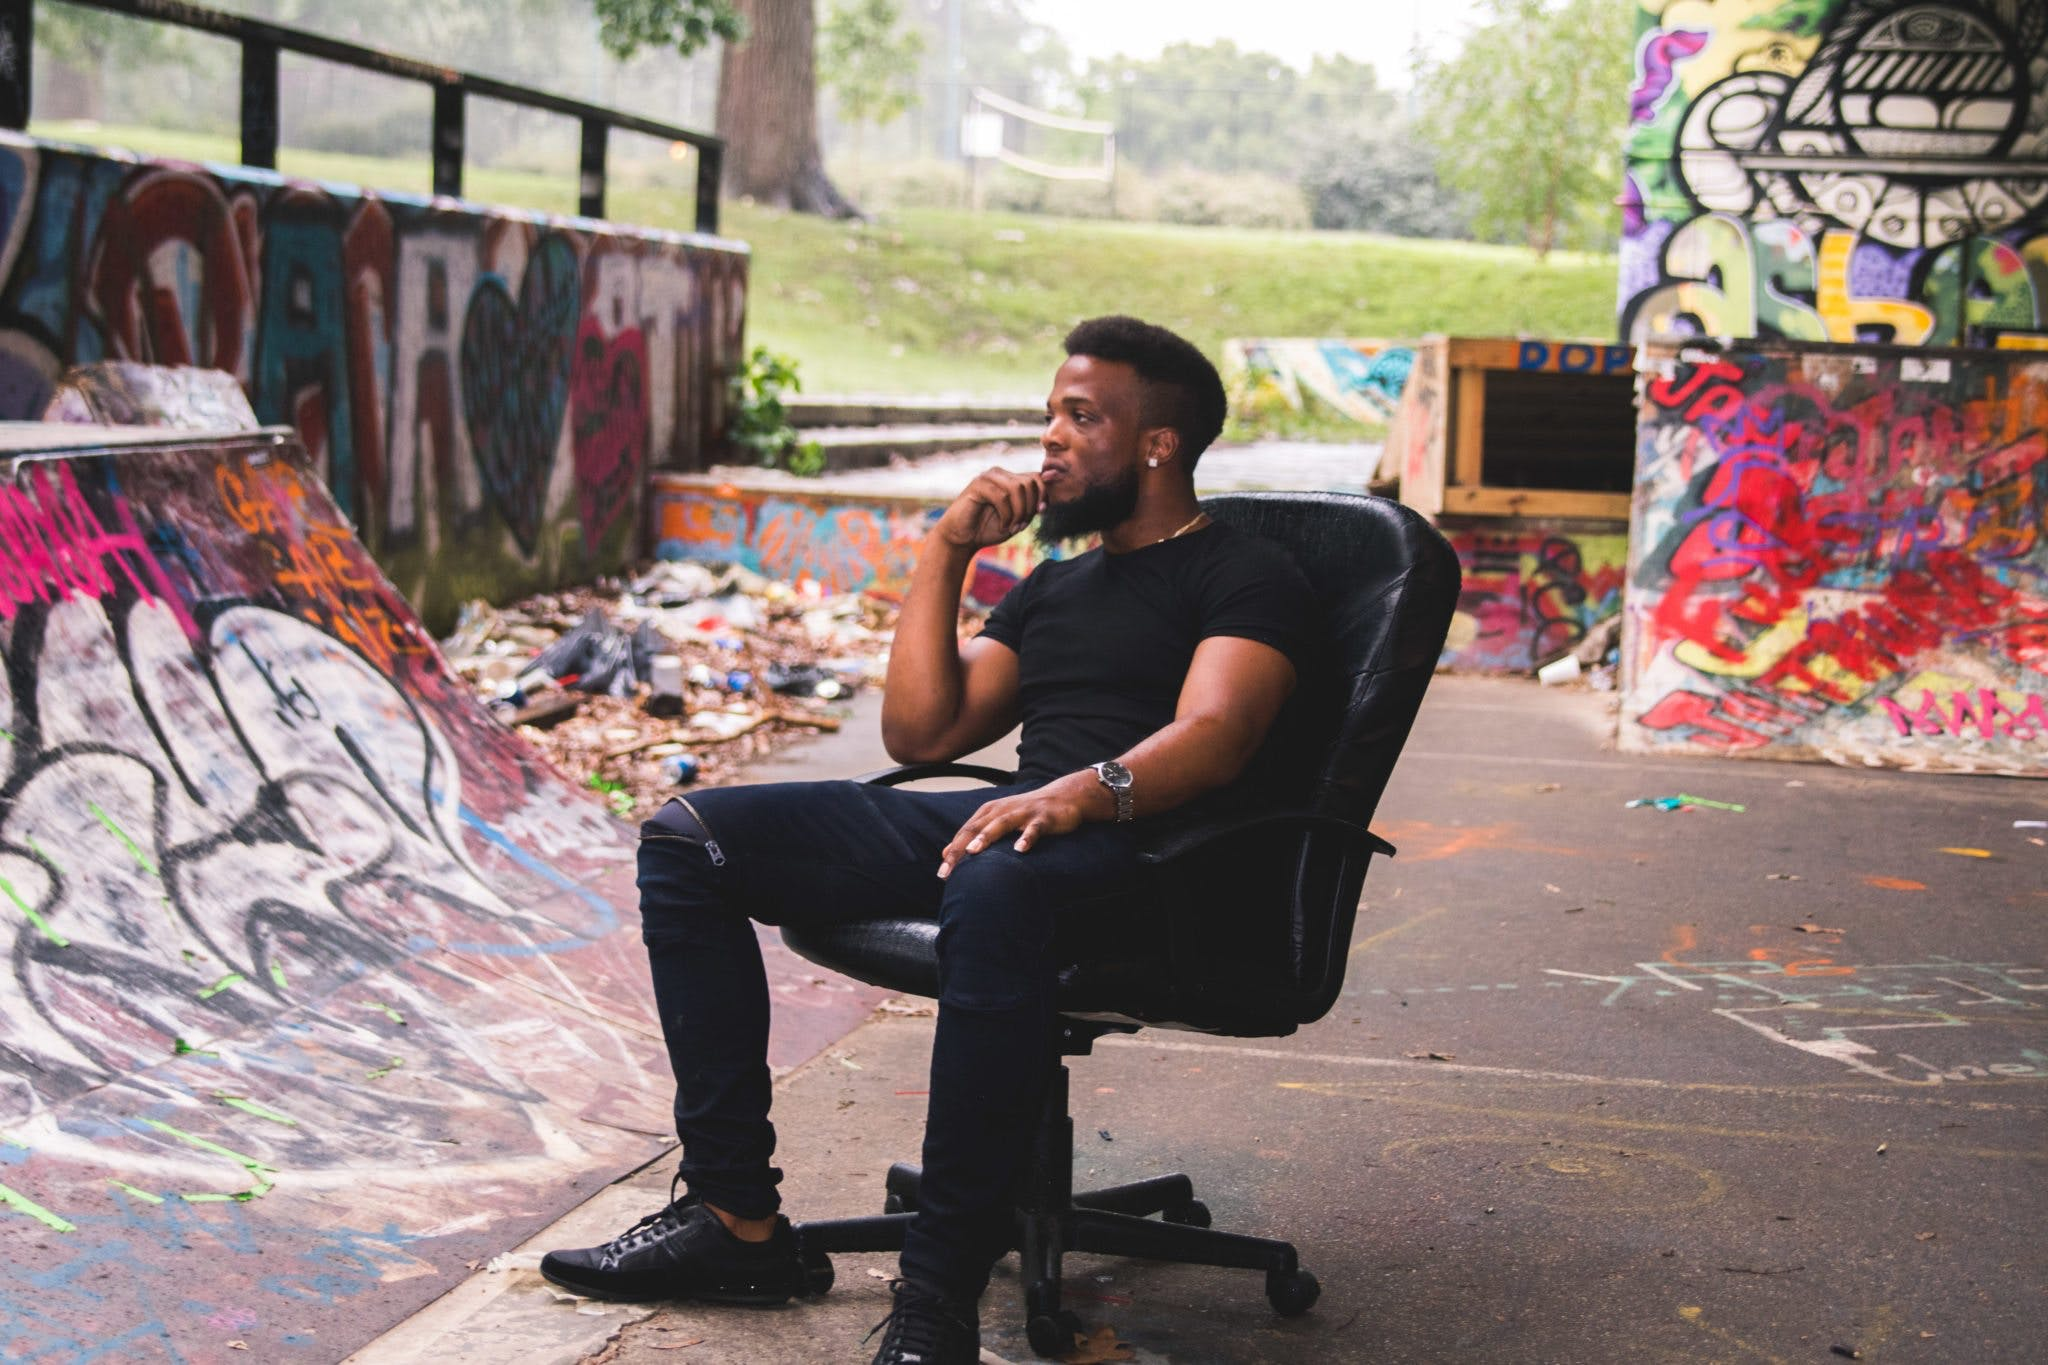 Man Wearing Black Crew-neck Shirt Sitting on Leather Rolling Chair